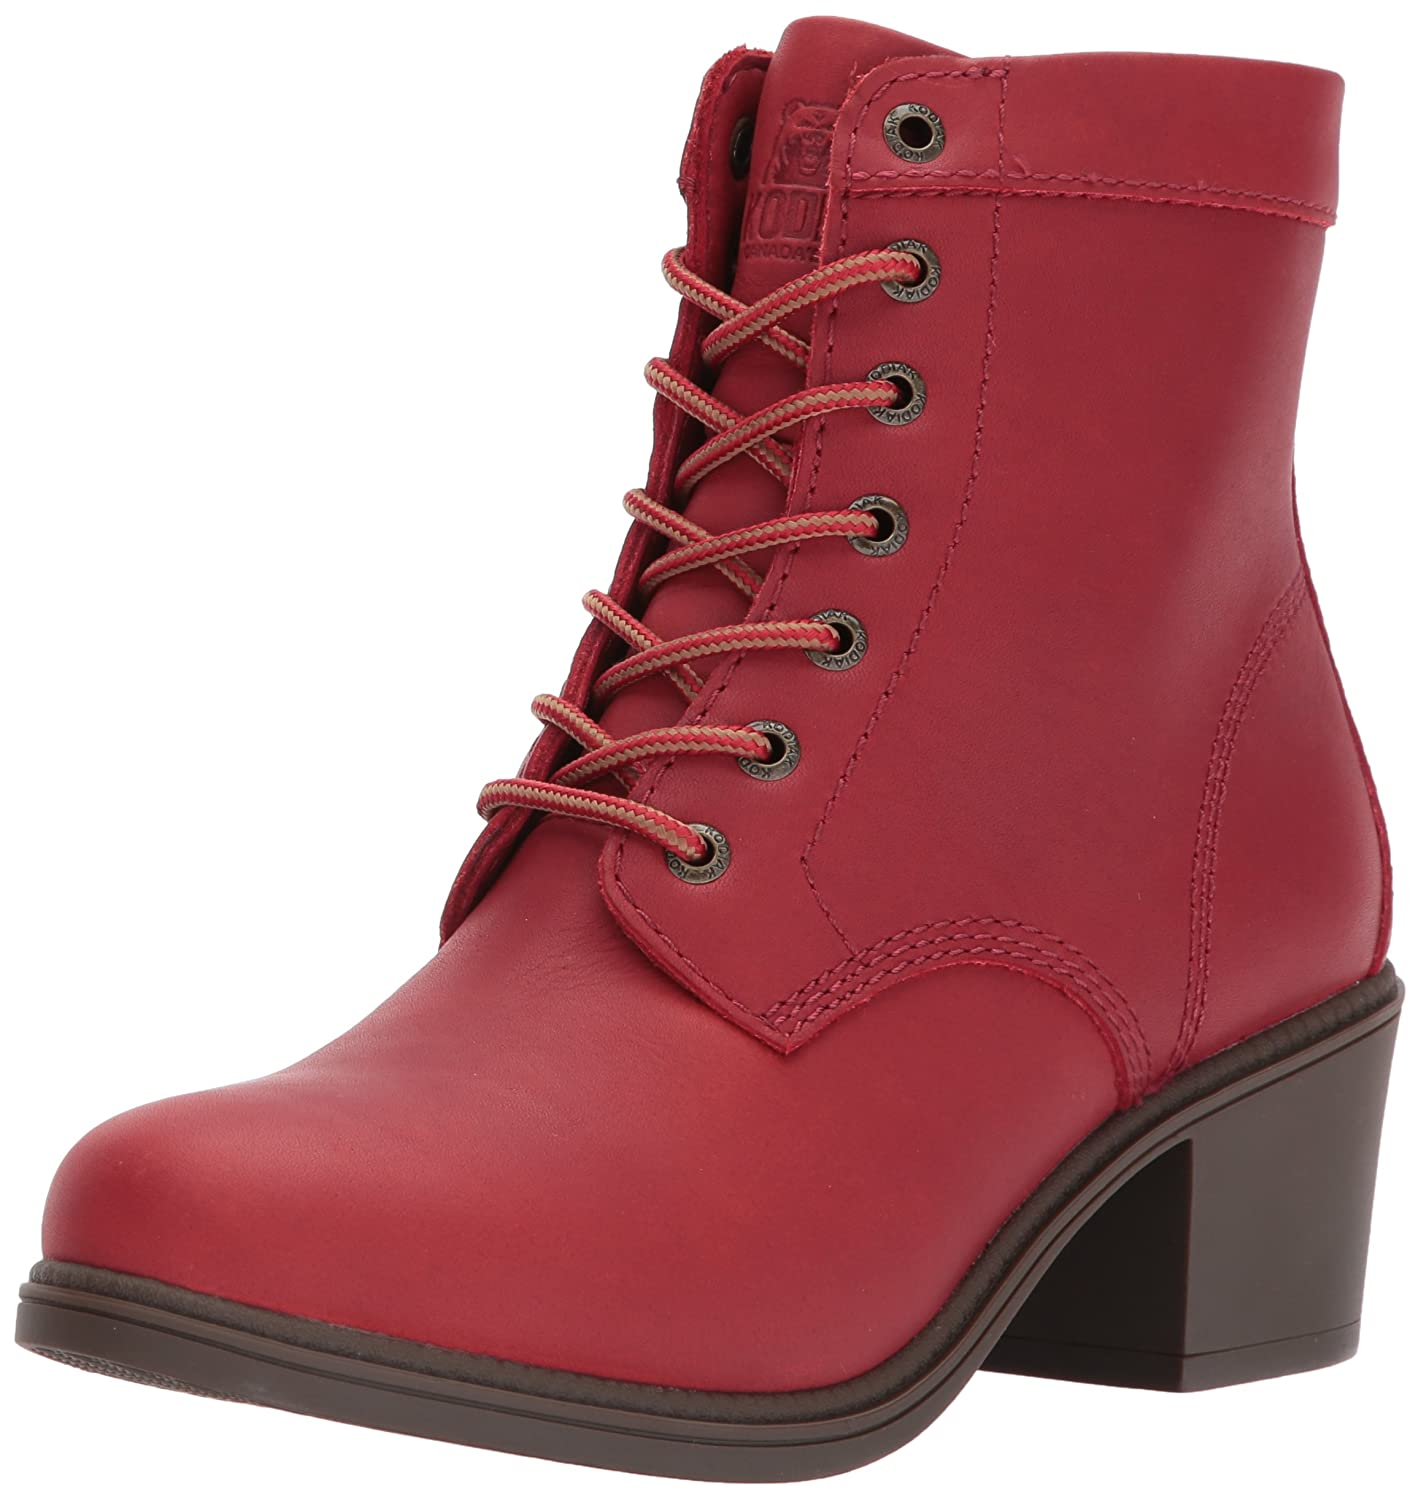 Kodiak Women's Claire Ankle Boot B0727VWP6B 10 B(M) US|Red